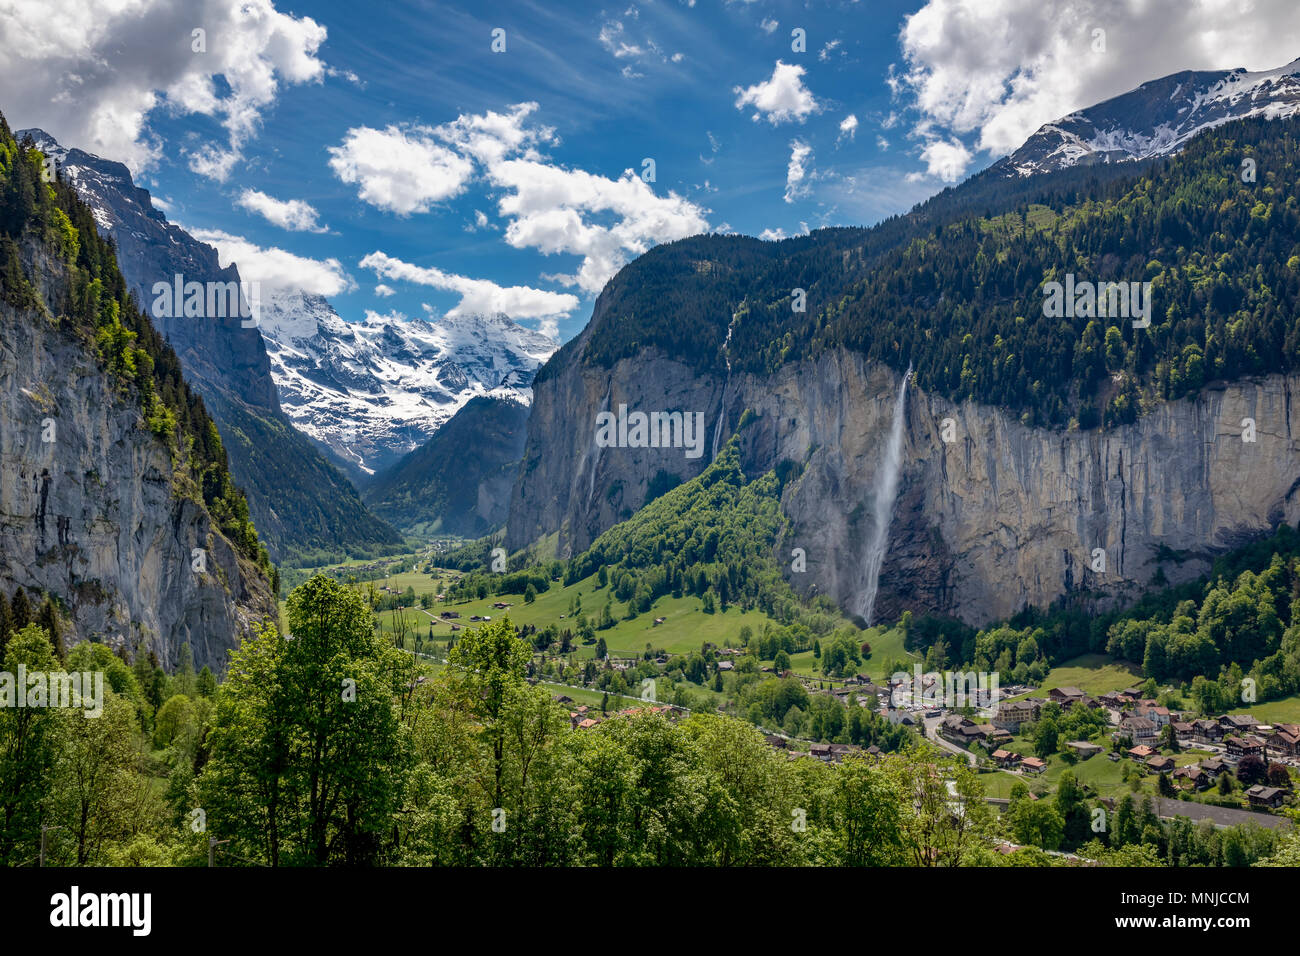 View of Lauterbrunnen with Staubbach Falls, Interlaken-Oberhasli, Bern, Switzerland Stock Photo